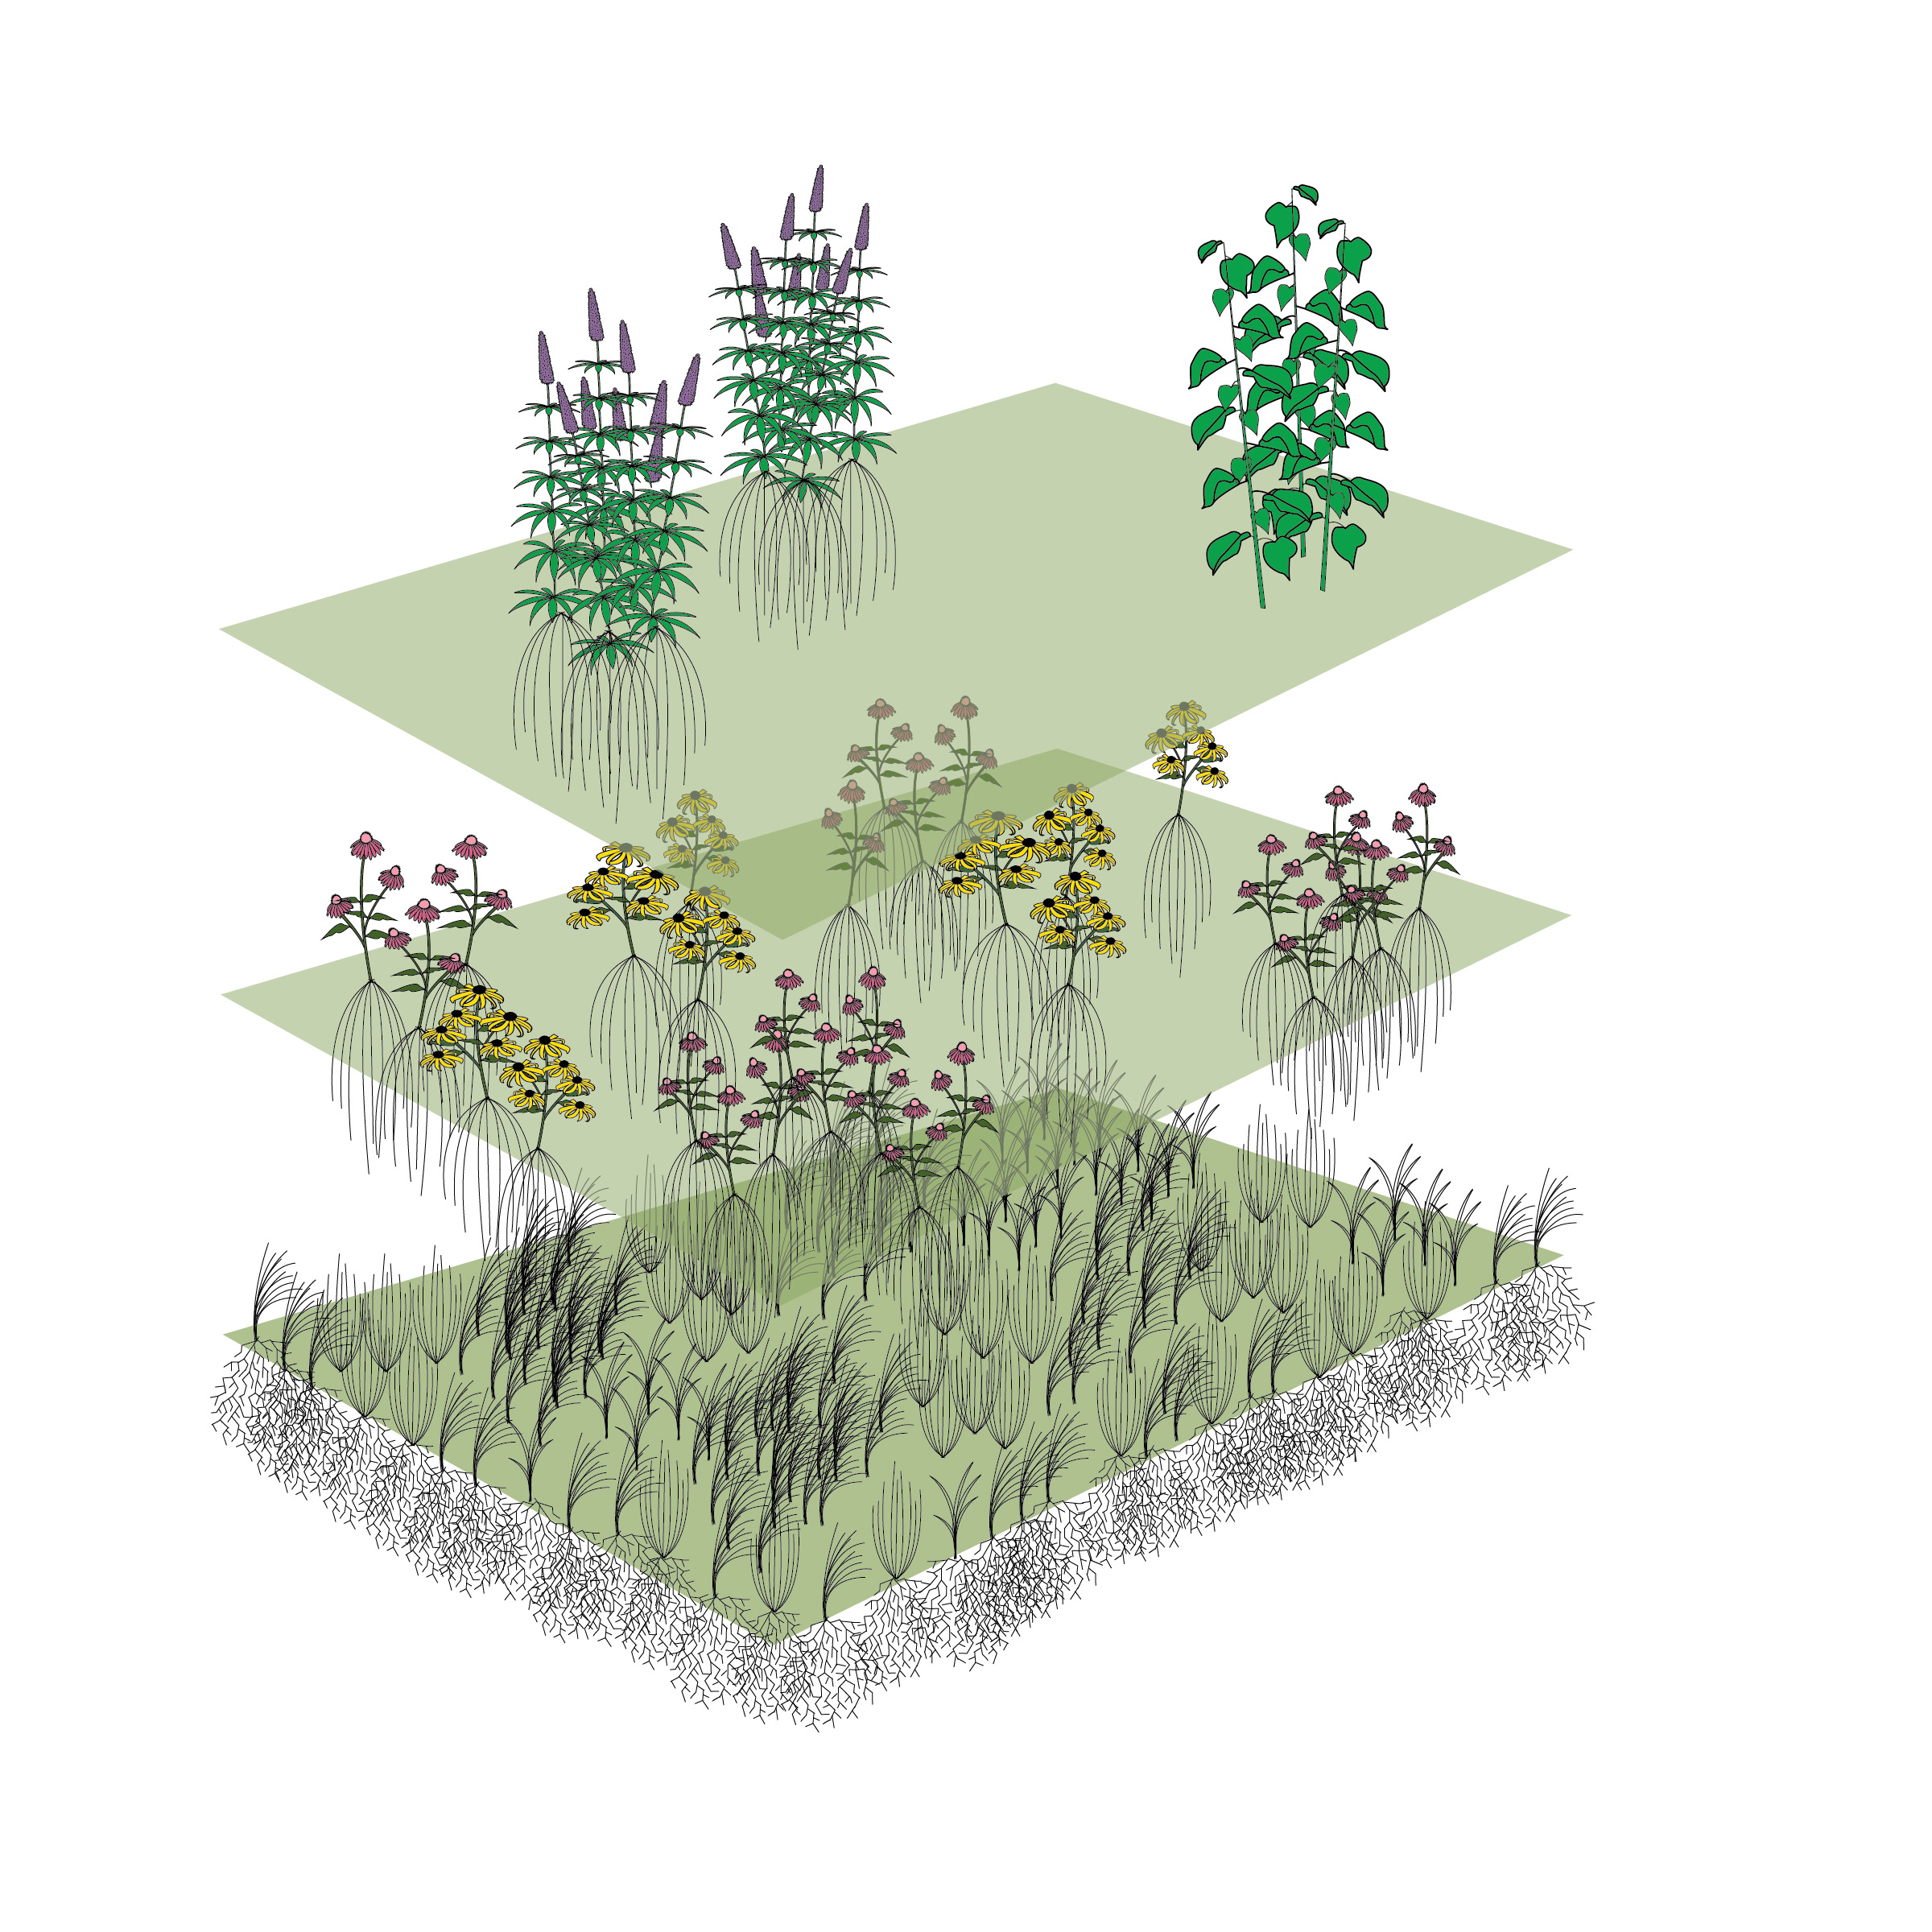 Our three-layered approach involves native grass seed on the bottom layer, wildflower plugs on the second, and more structural plants (often potted) on the third, or top, layer. Illustration by Steve Heymans.